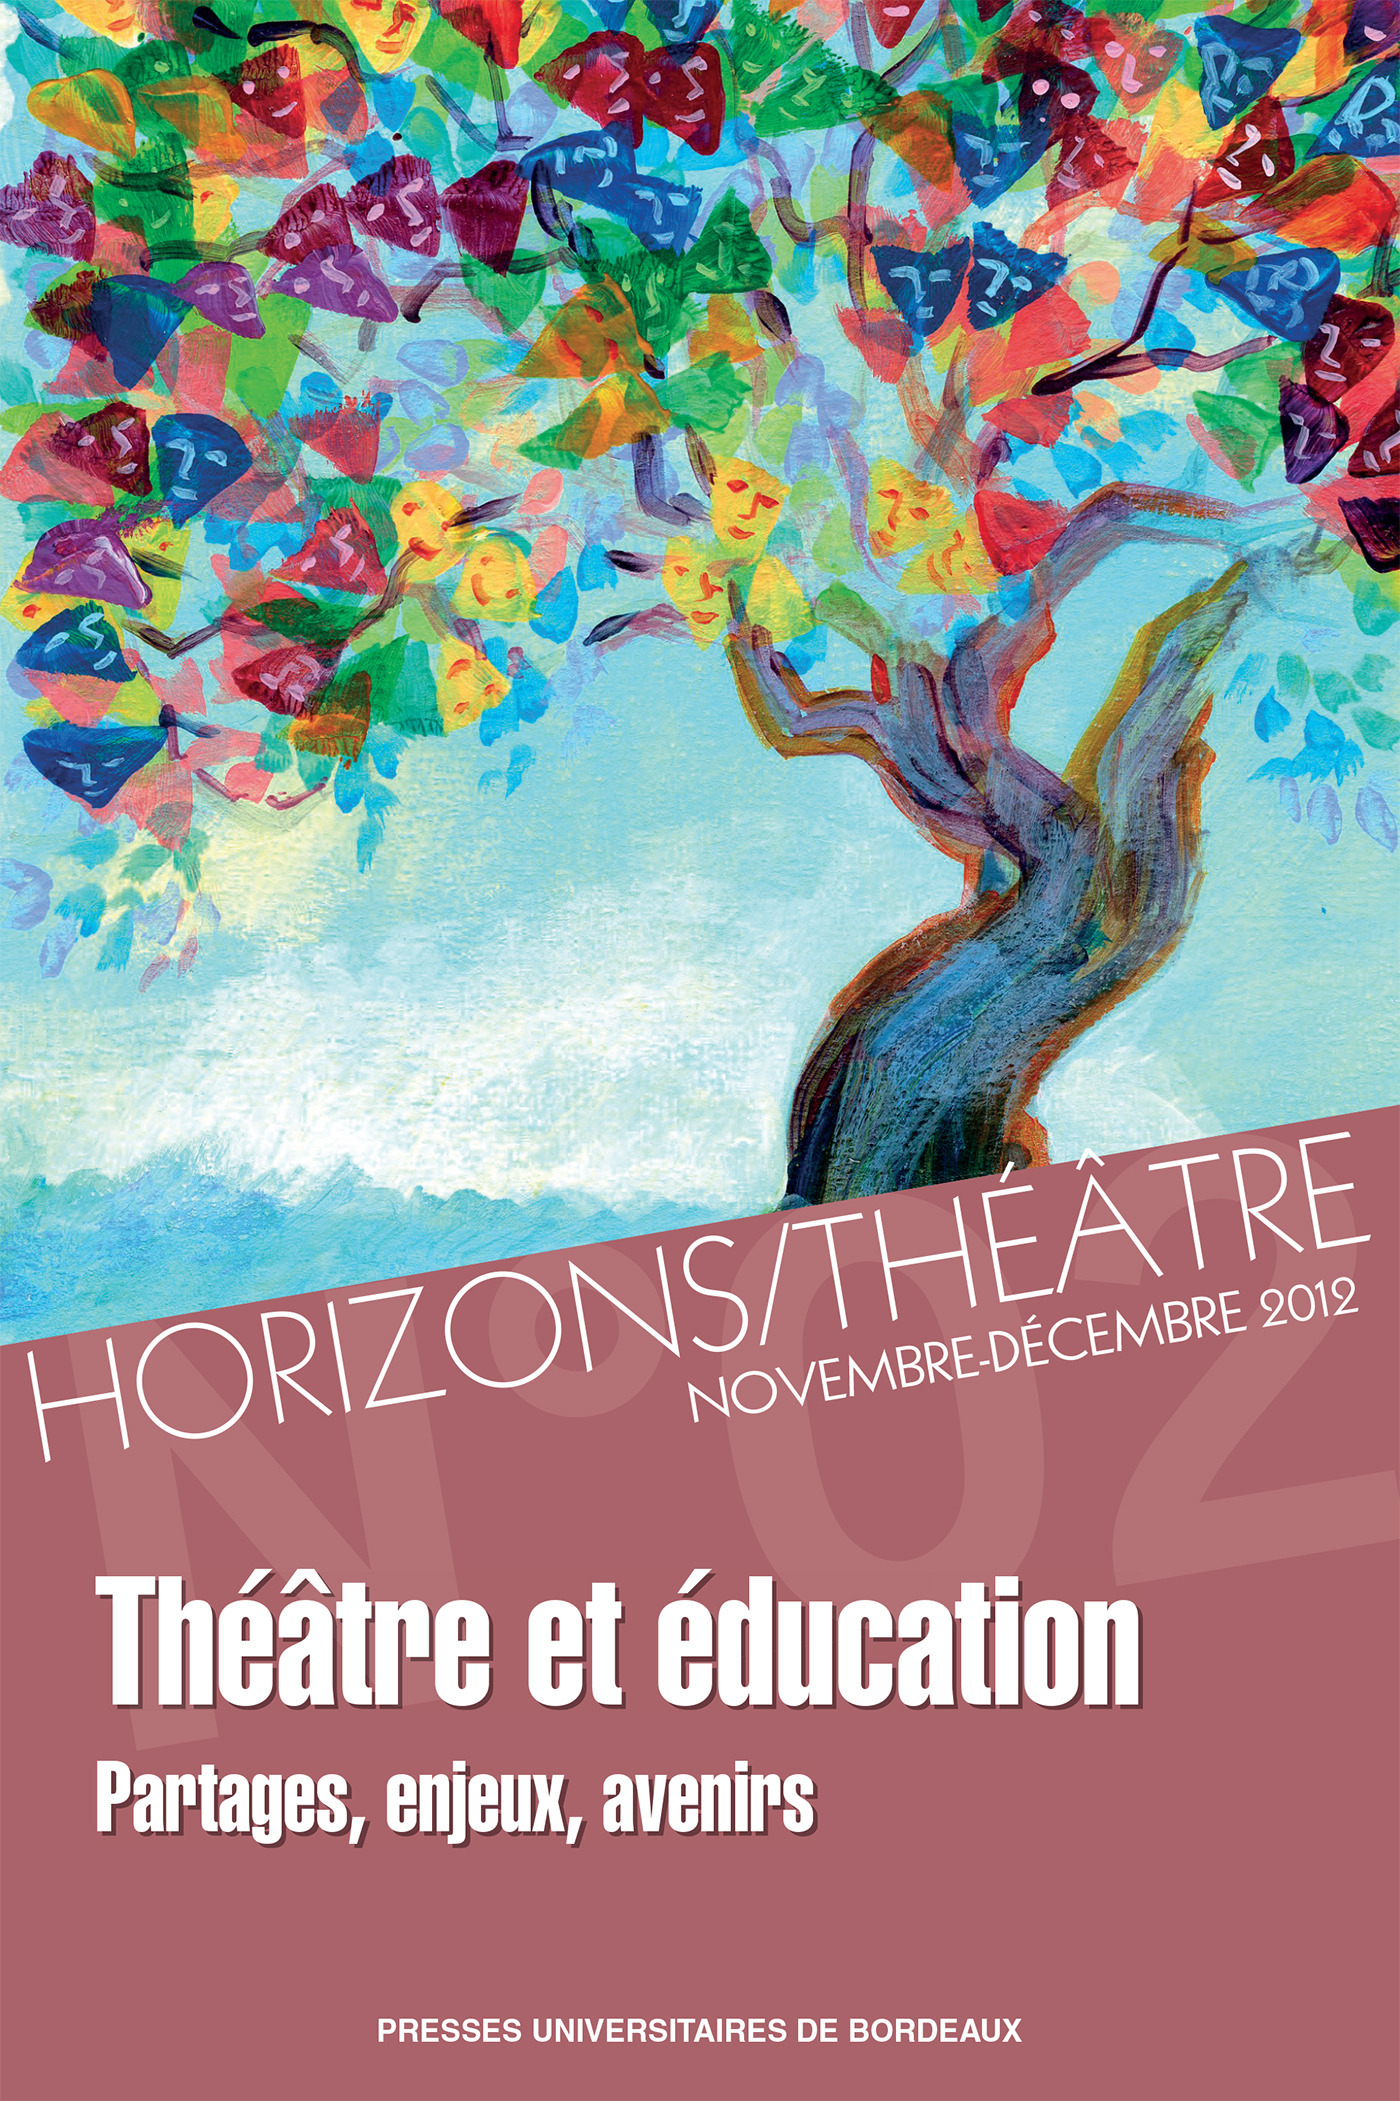 Theatre Et Education